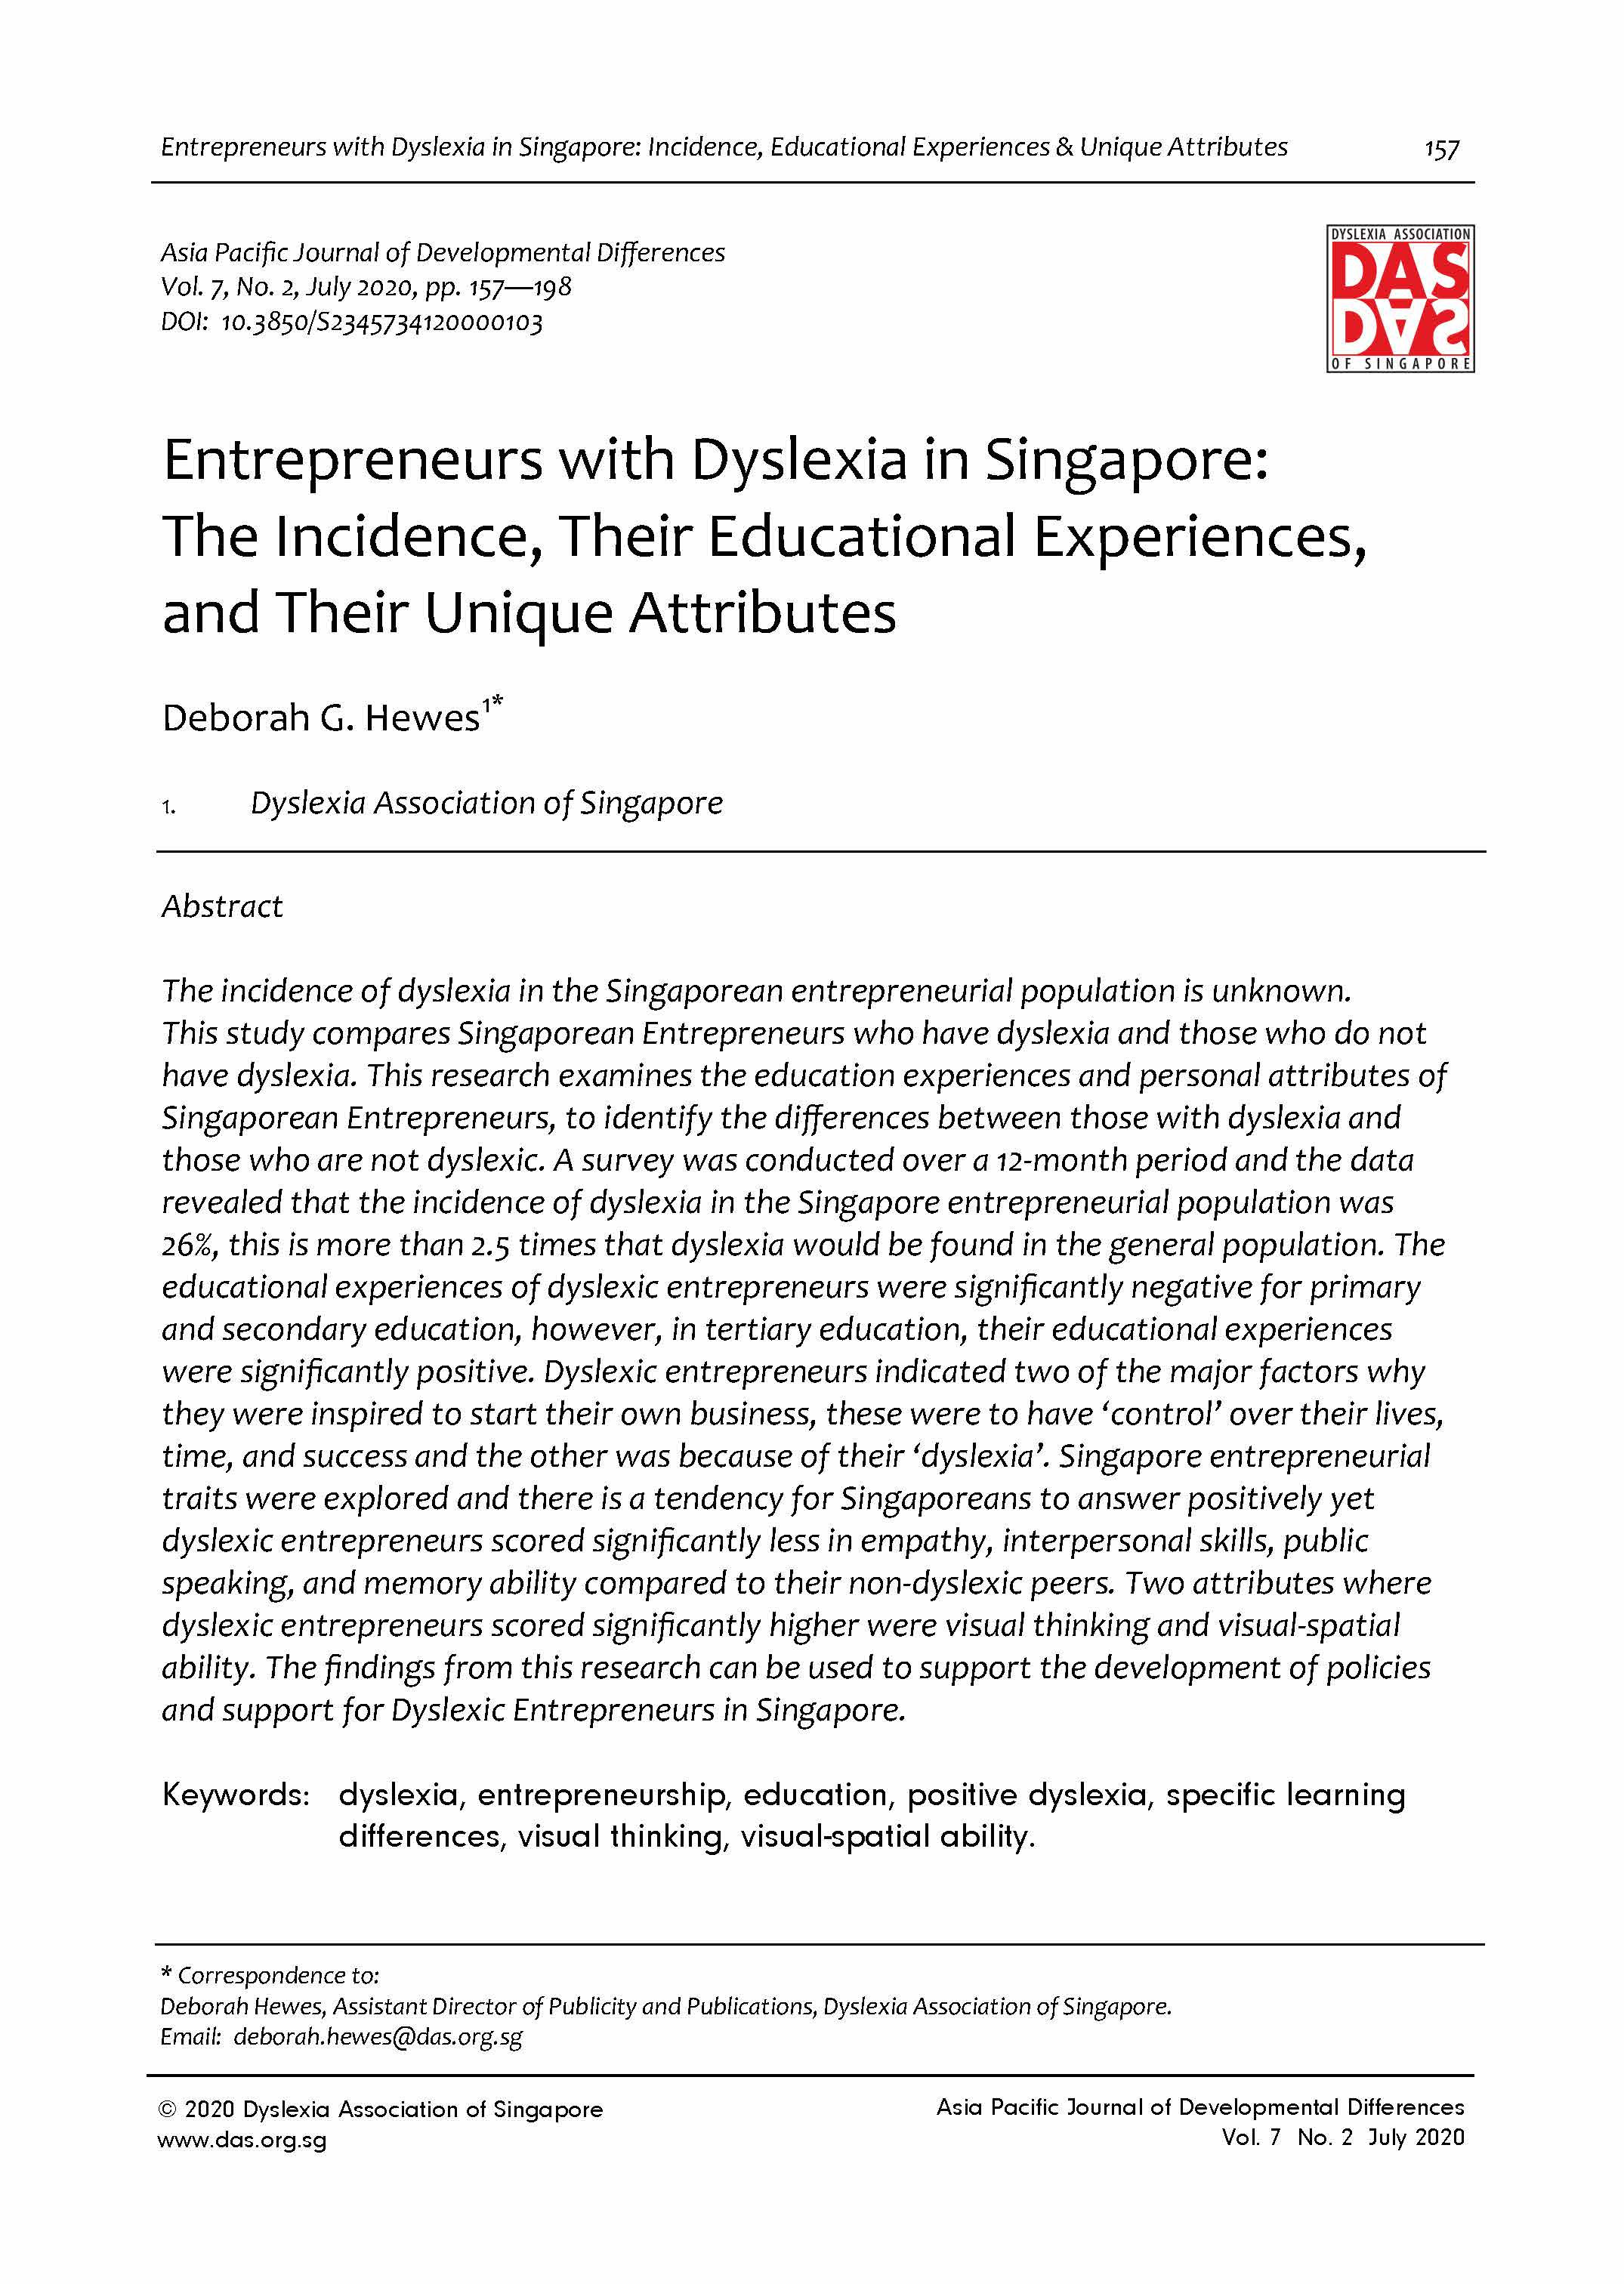 2. Entrepreneurs with Dyslexia in Singapore: The Incidence, Their Educational Experiences, and Their Unique Attributes